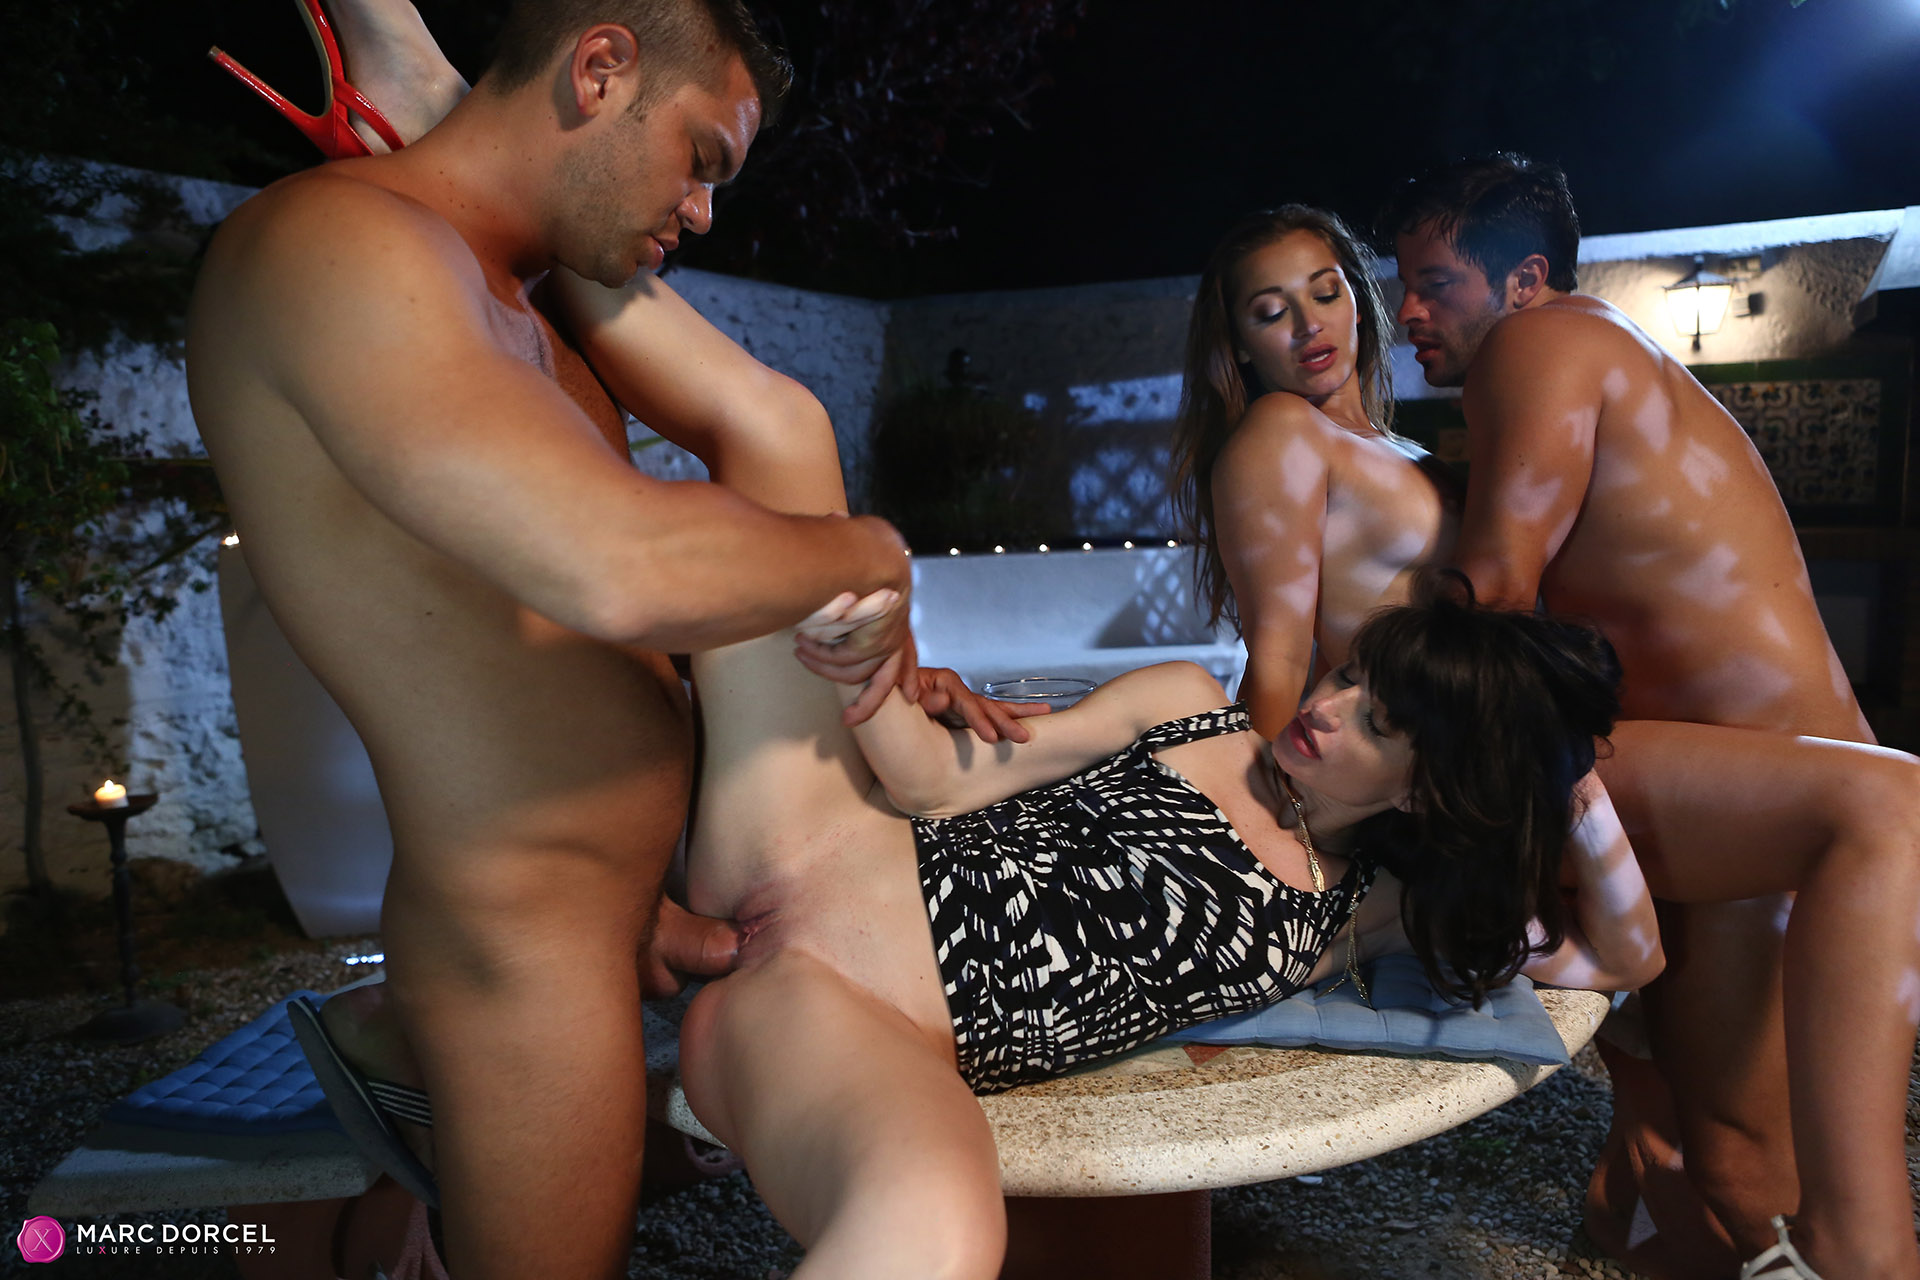 Hotwifes first time with 2 bbc lovely creampie finish - 3 part 9